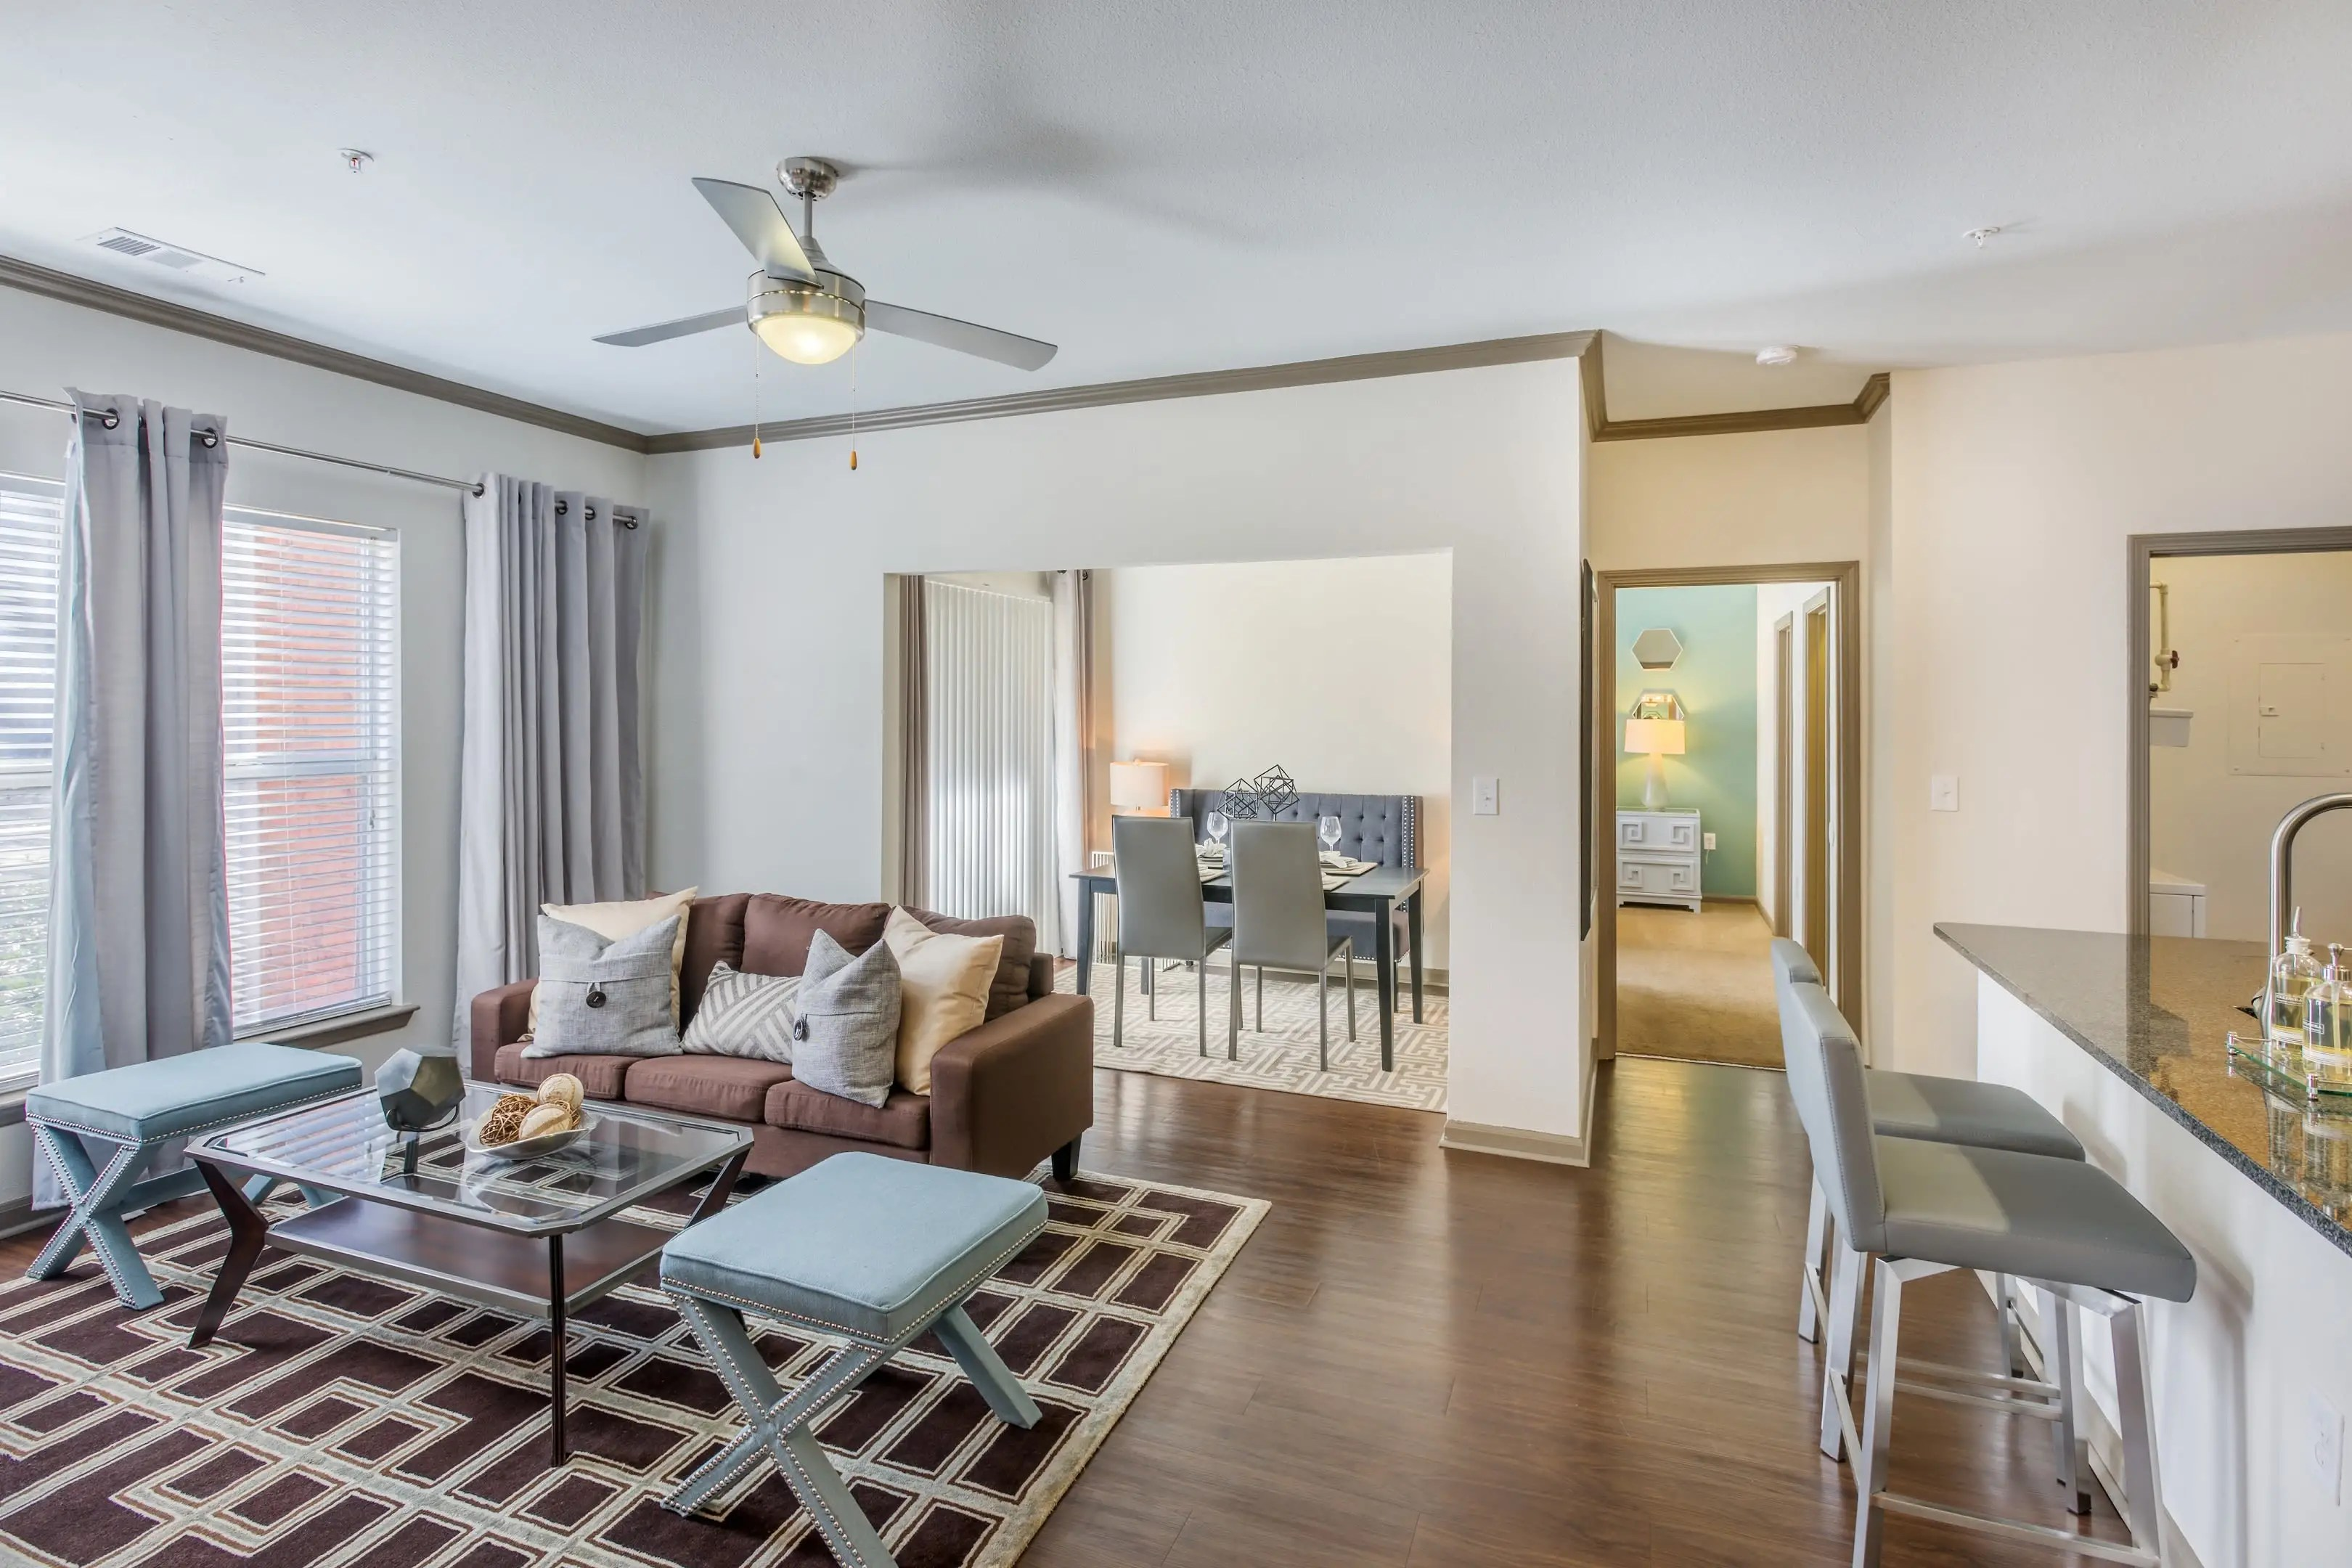 1 & 2 Bedroom Apartments For Rent In Charlotte, NC